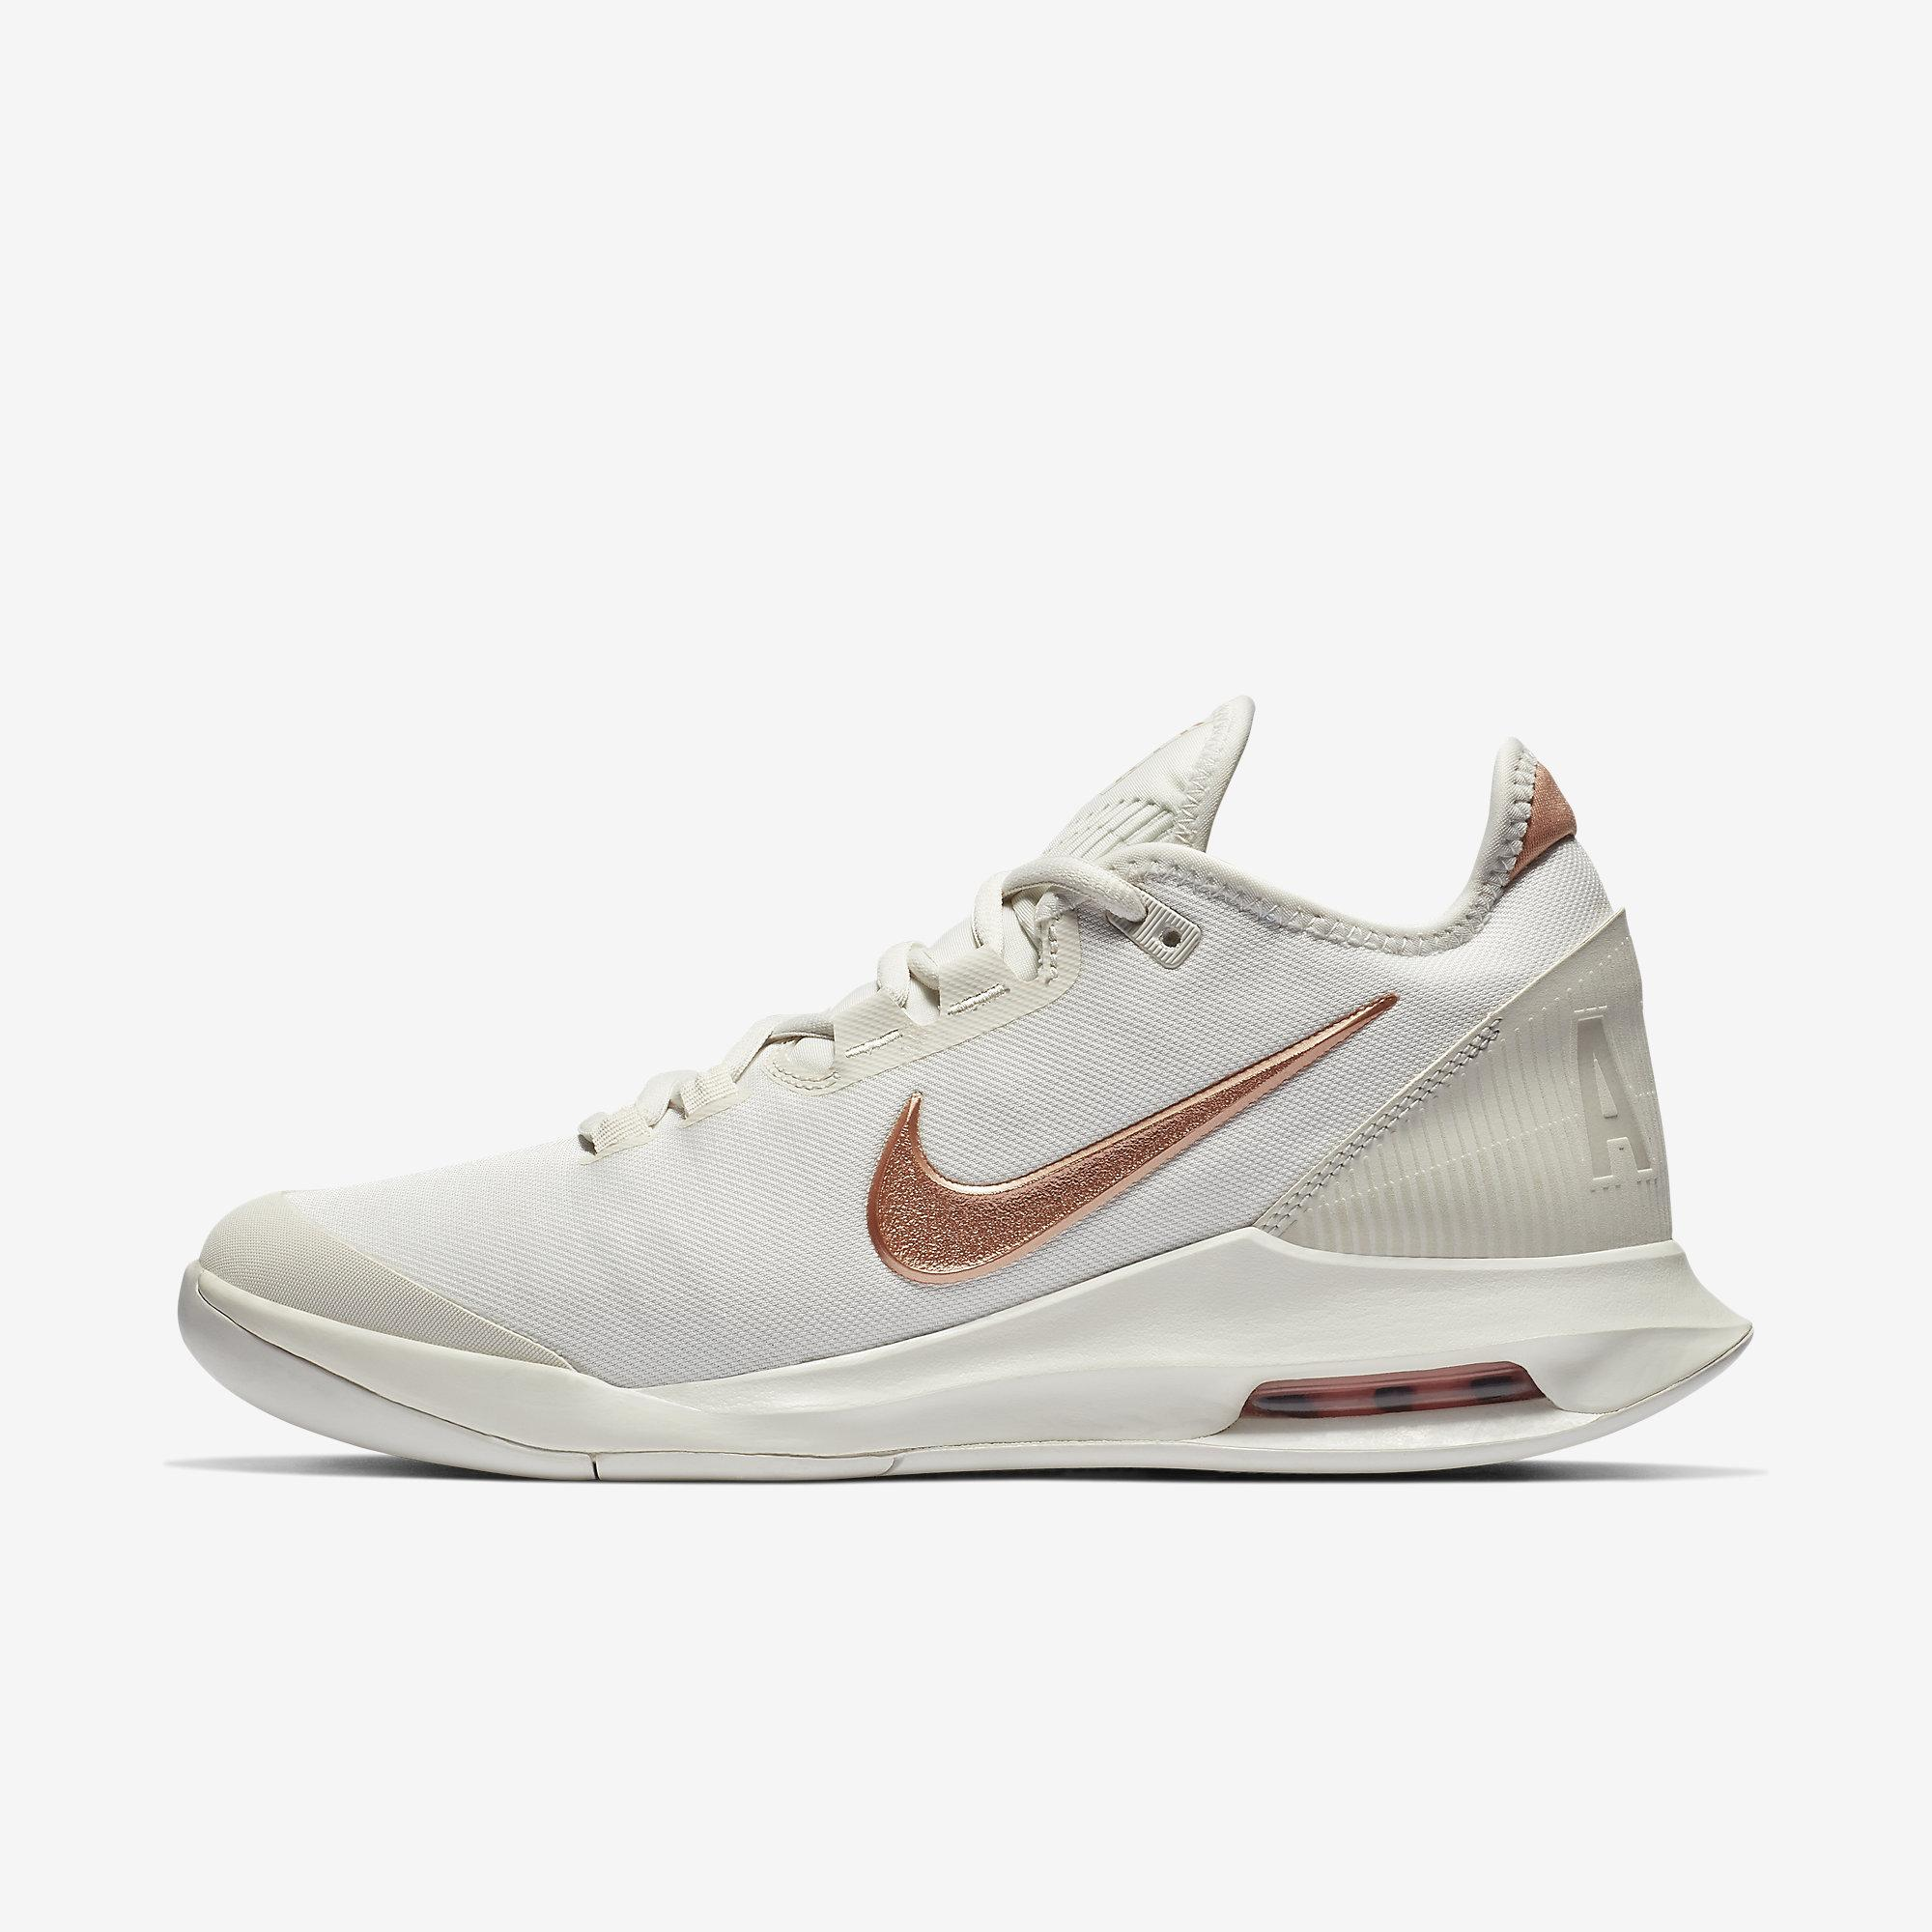 save off 23fab dc4e0 Nike Womens Air Max Wildcard Tennis Shoes - Phantom Rose Gold -  Tennisnuts.com